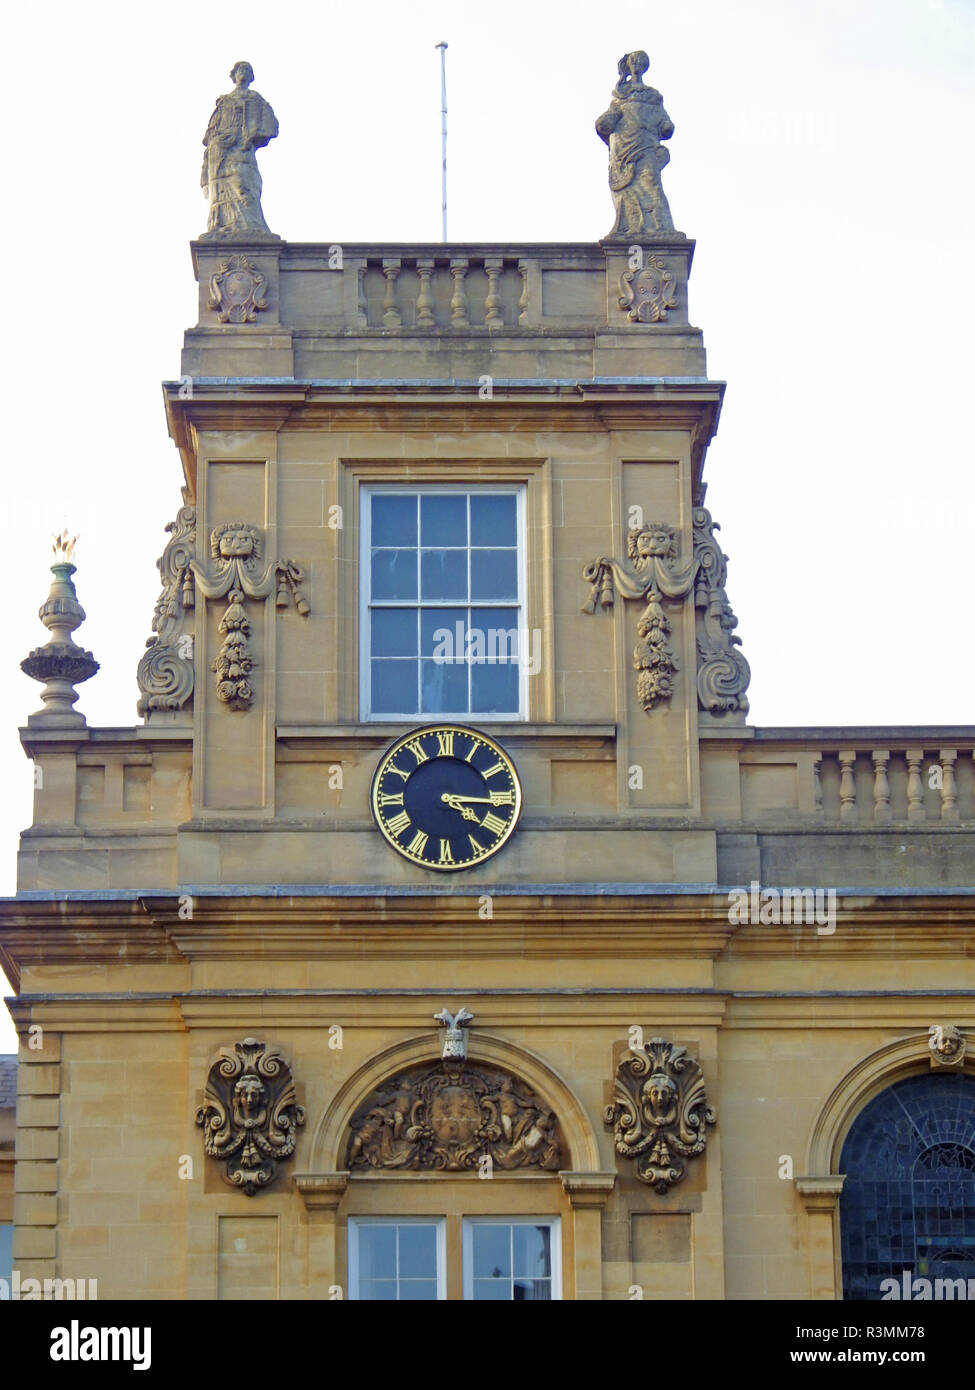 Trinity college chapel tower and clock one of the Oxford University colleges famously used in the Harry Potter films stories by J K Rowling - Stock Image